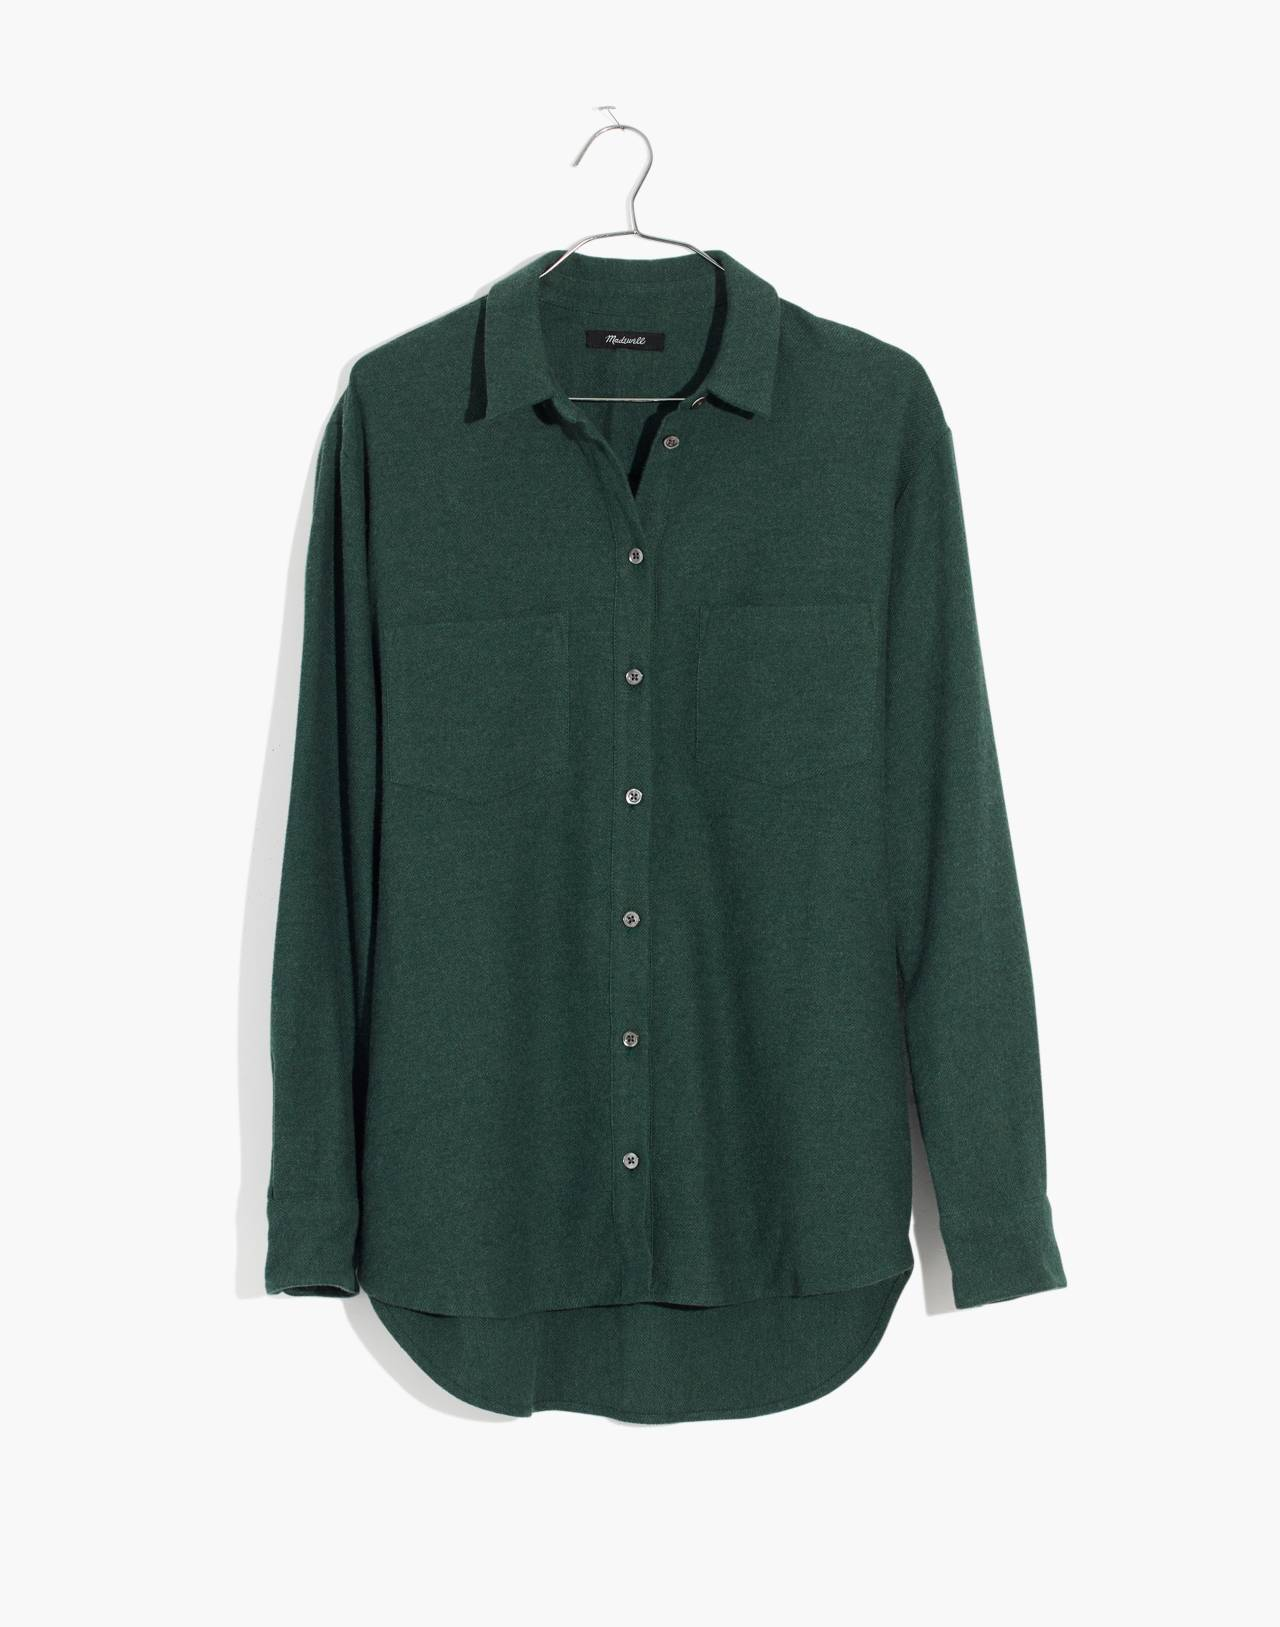 Flannel Sunday Shirt in hunter green image 4